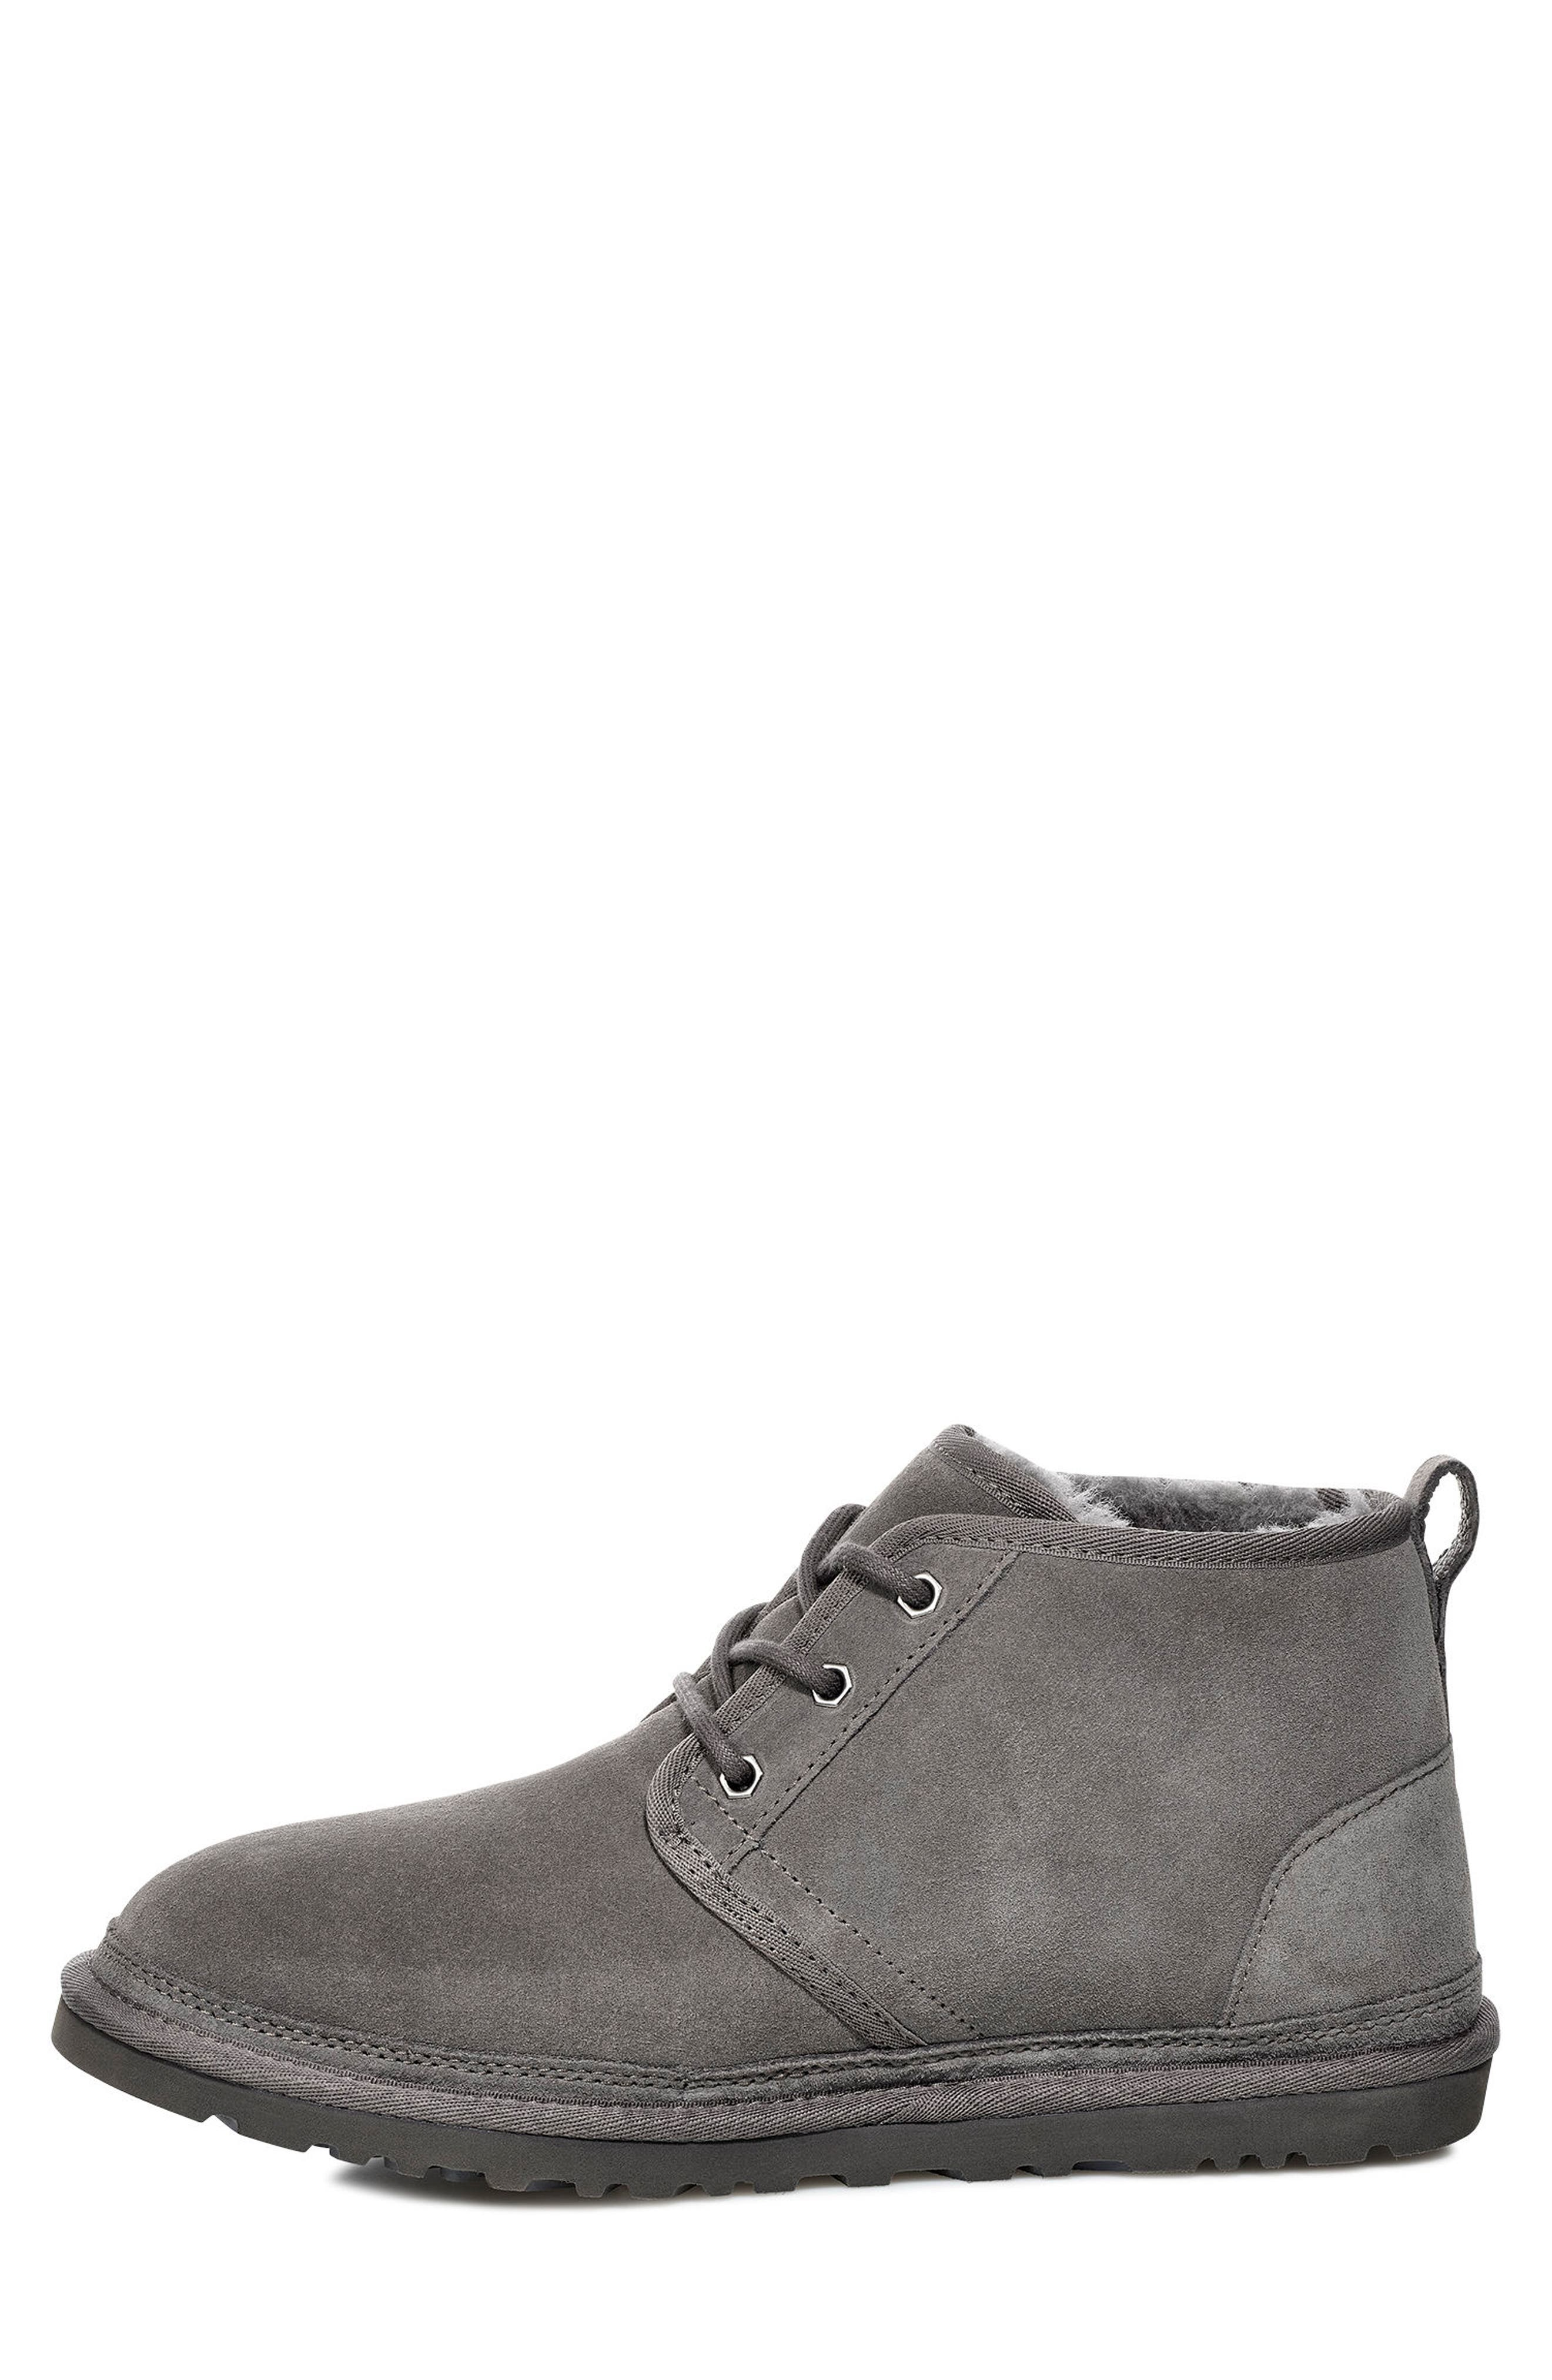 UGG<SUP>®</SUP>, Neumel Chukka Boot, Alternate thumbnail 3, color, CHARCOAL SUEDE